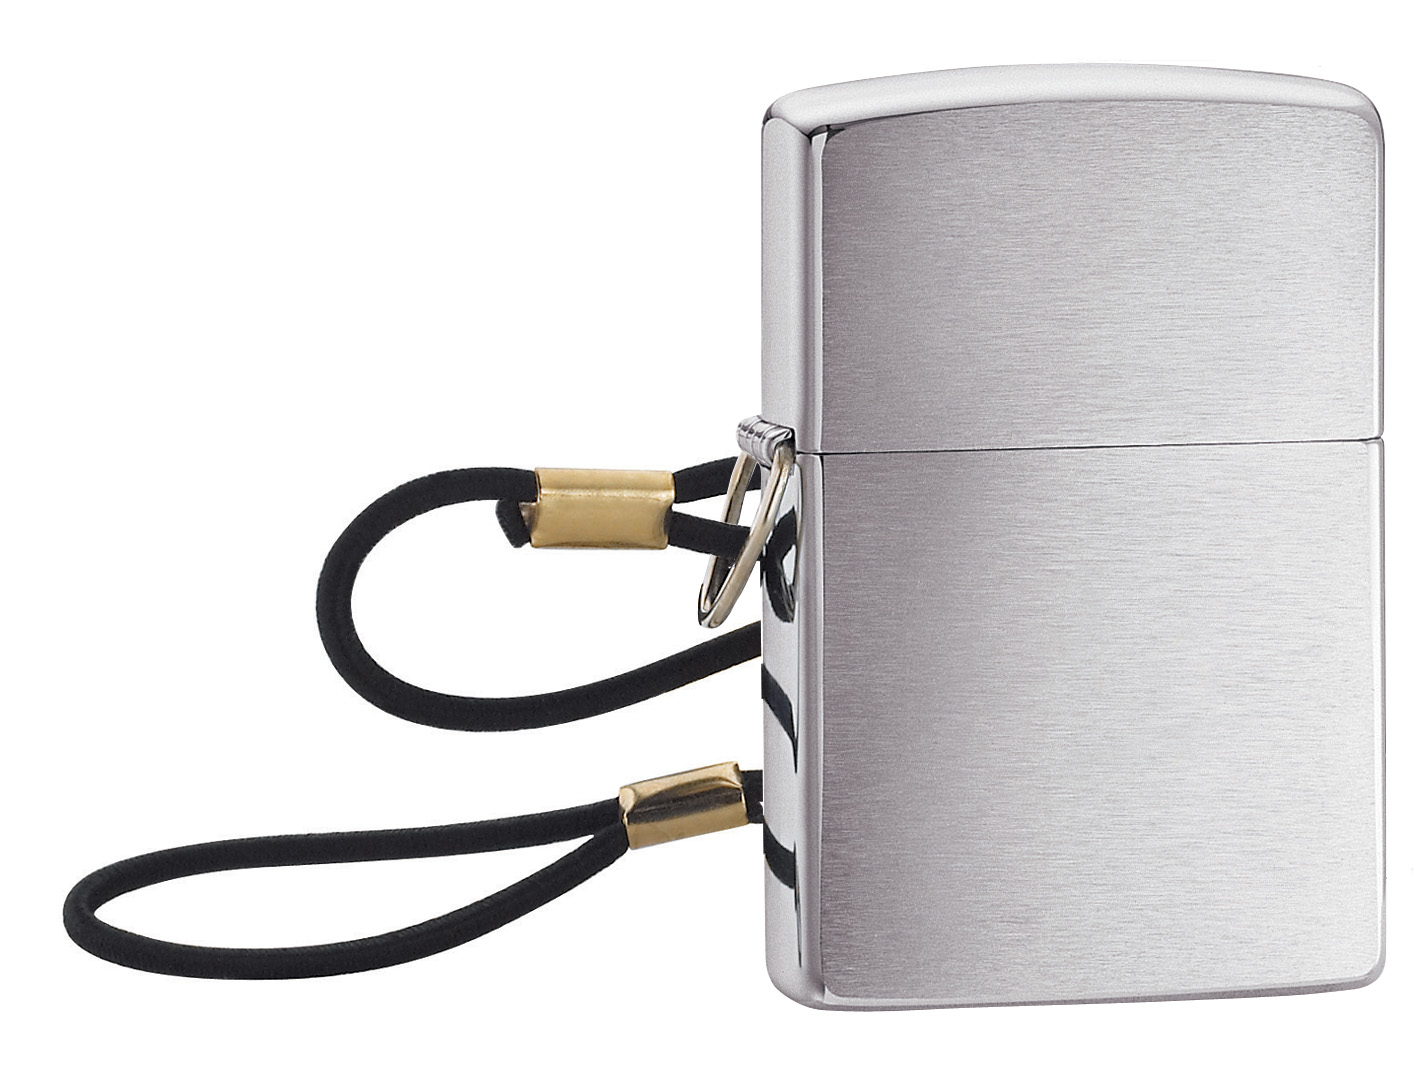 Zippo Loss proof with Loop & Lanyard Brushed Chrome